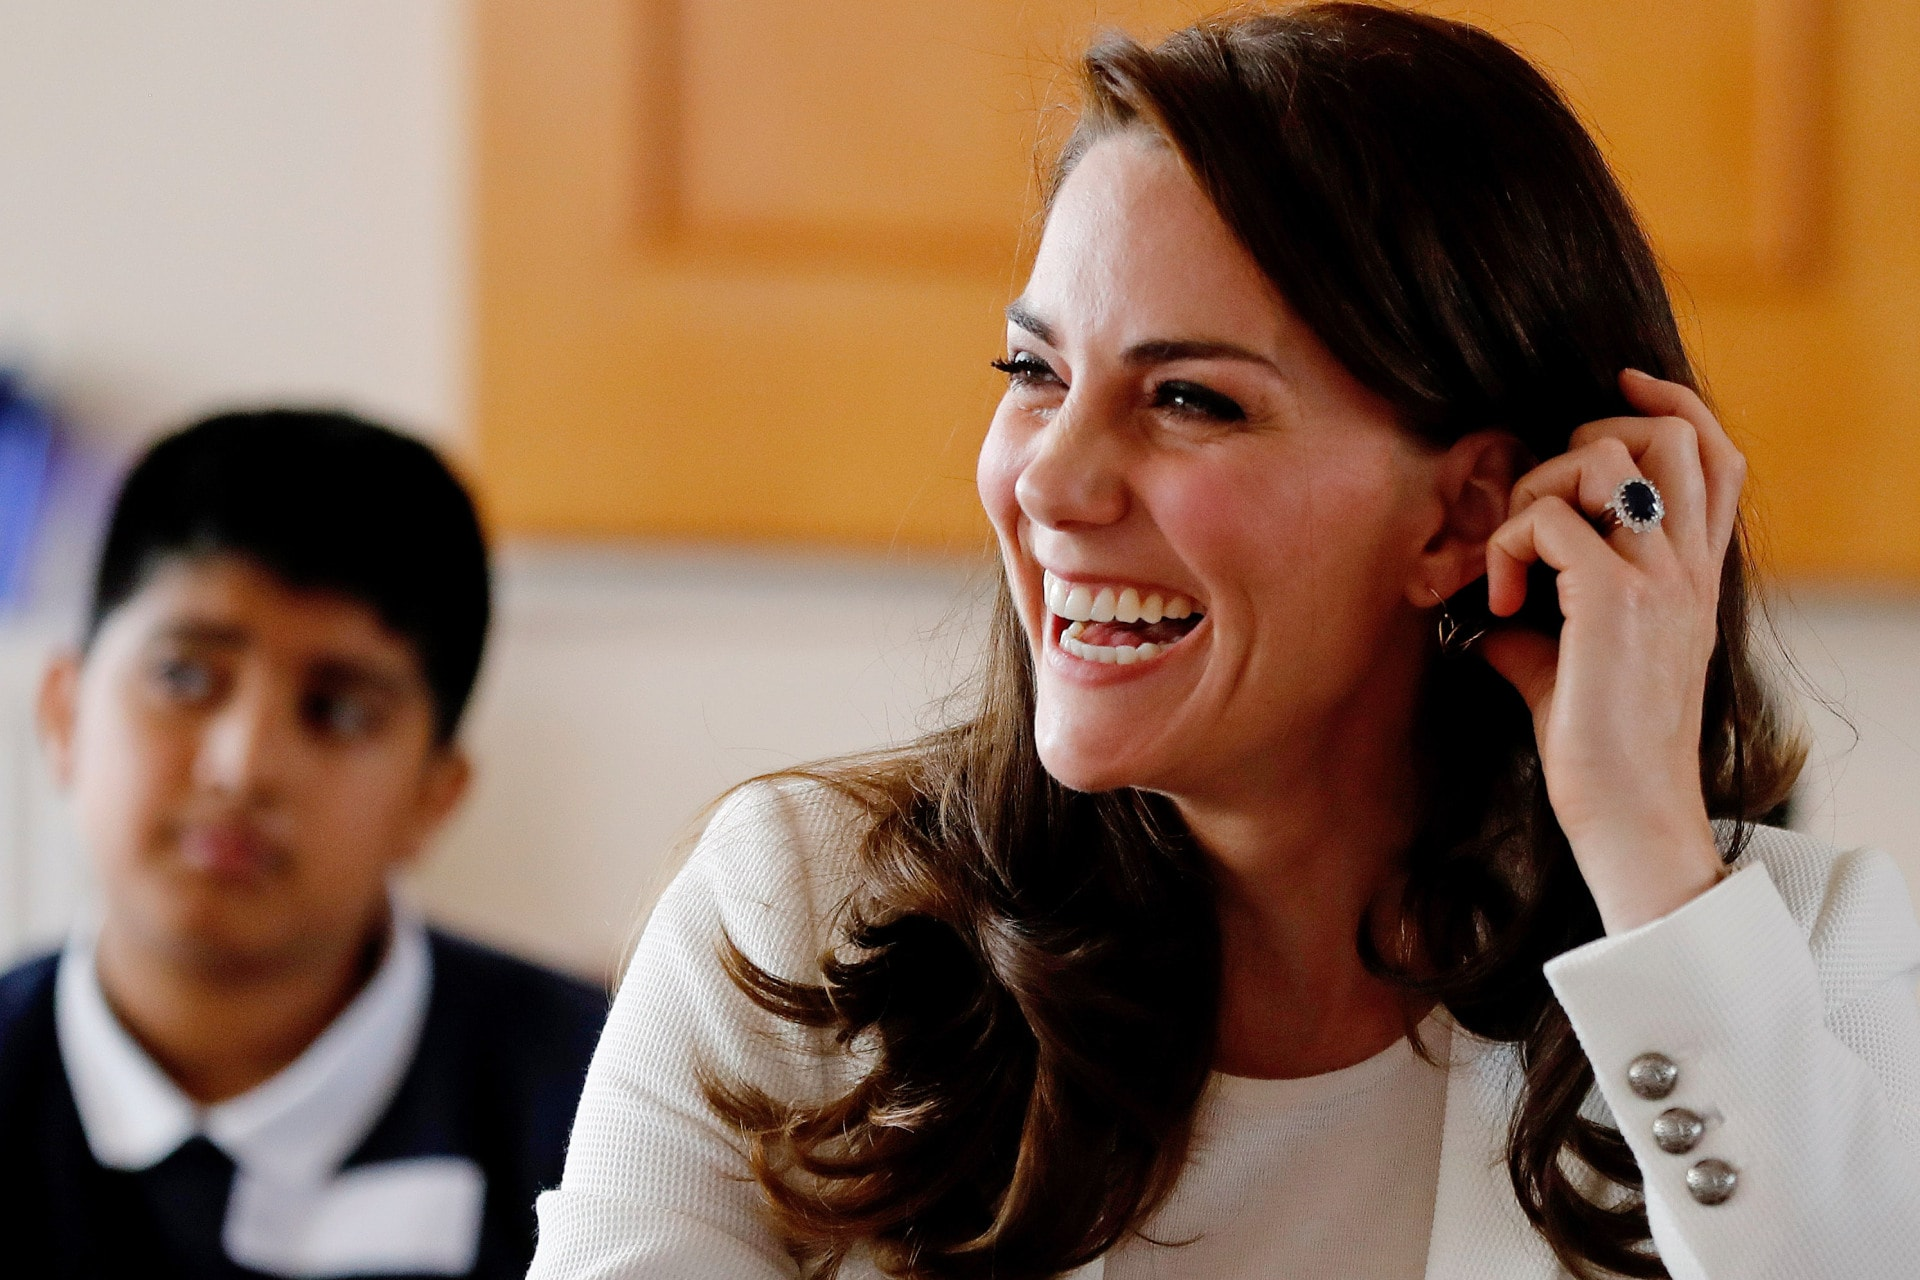 Kate Middleton's engagement ring once belonged to Prince Harry